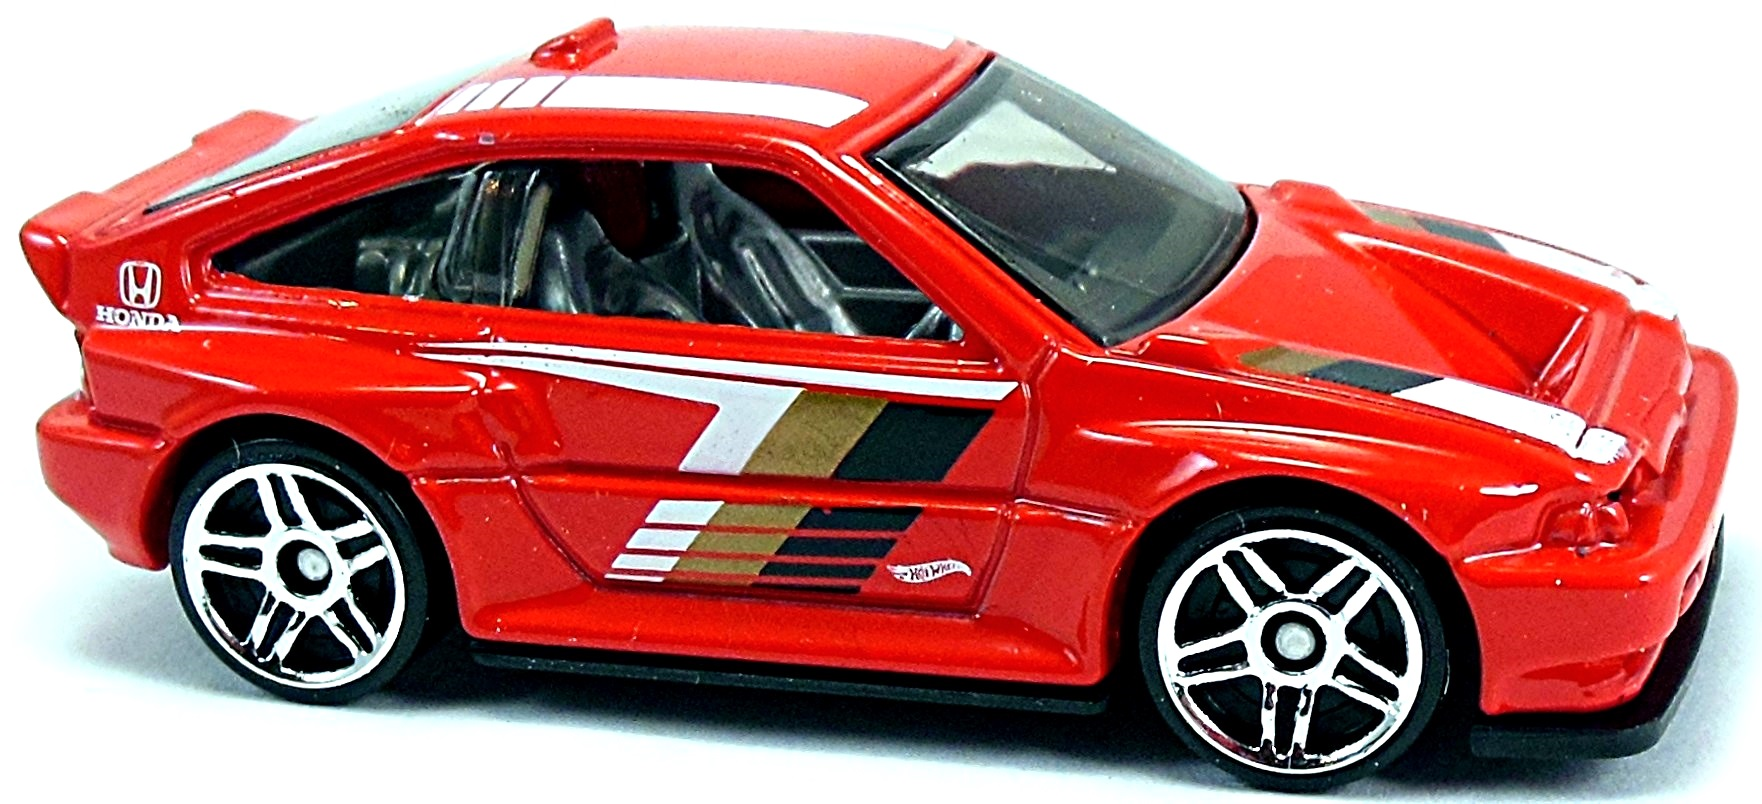 Honda CRX Mm Hot Wheels Newsletter - Cool car stripes